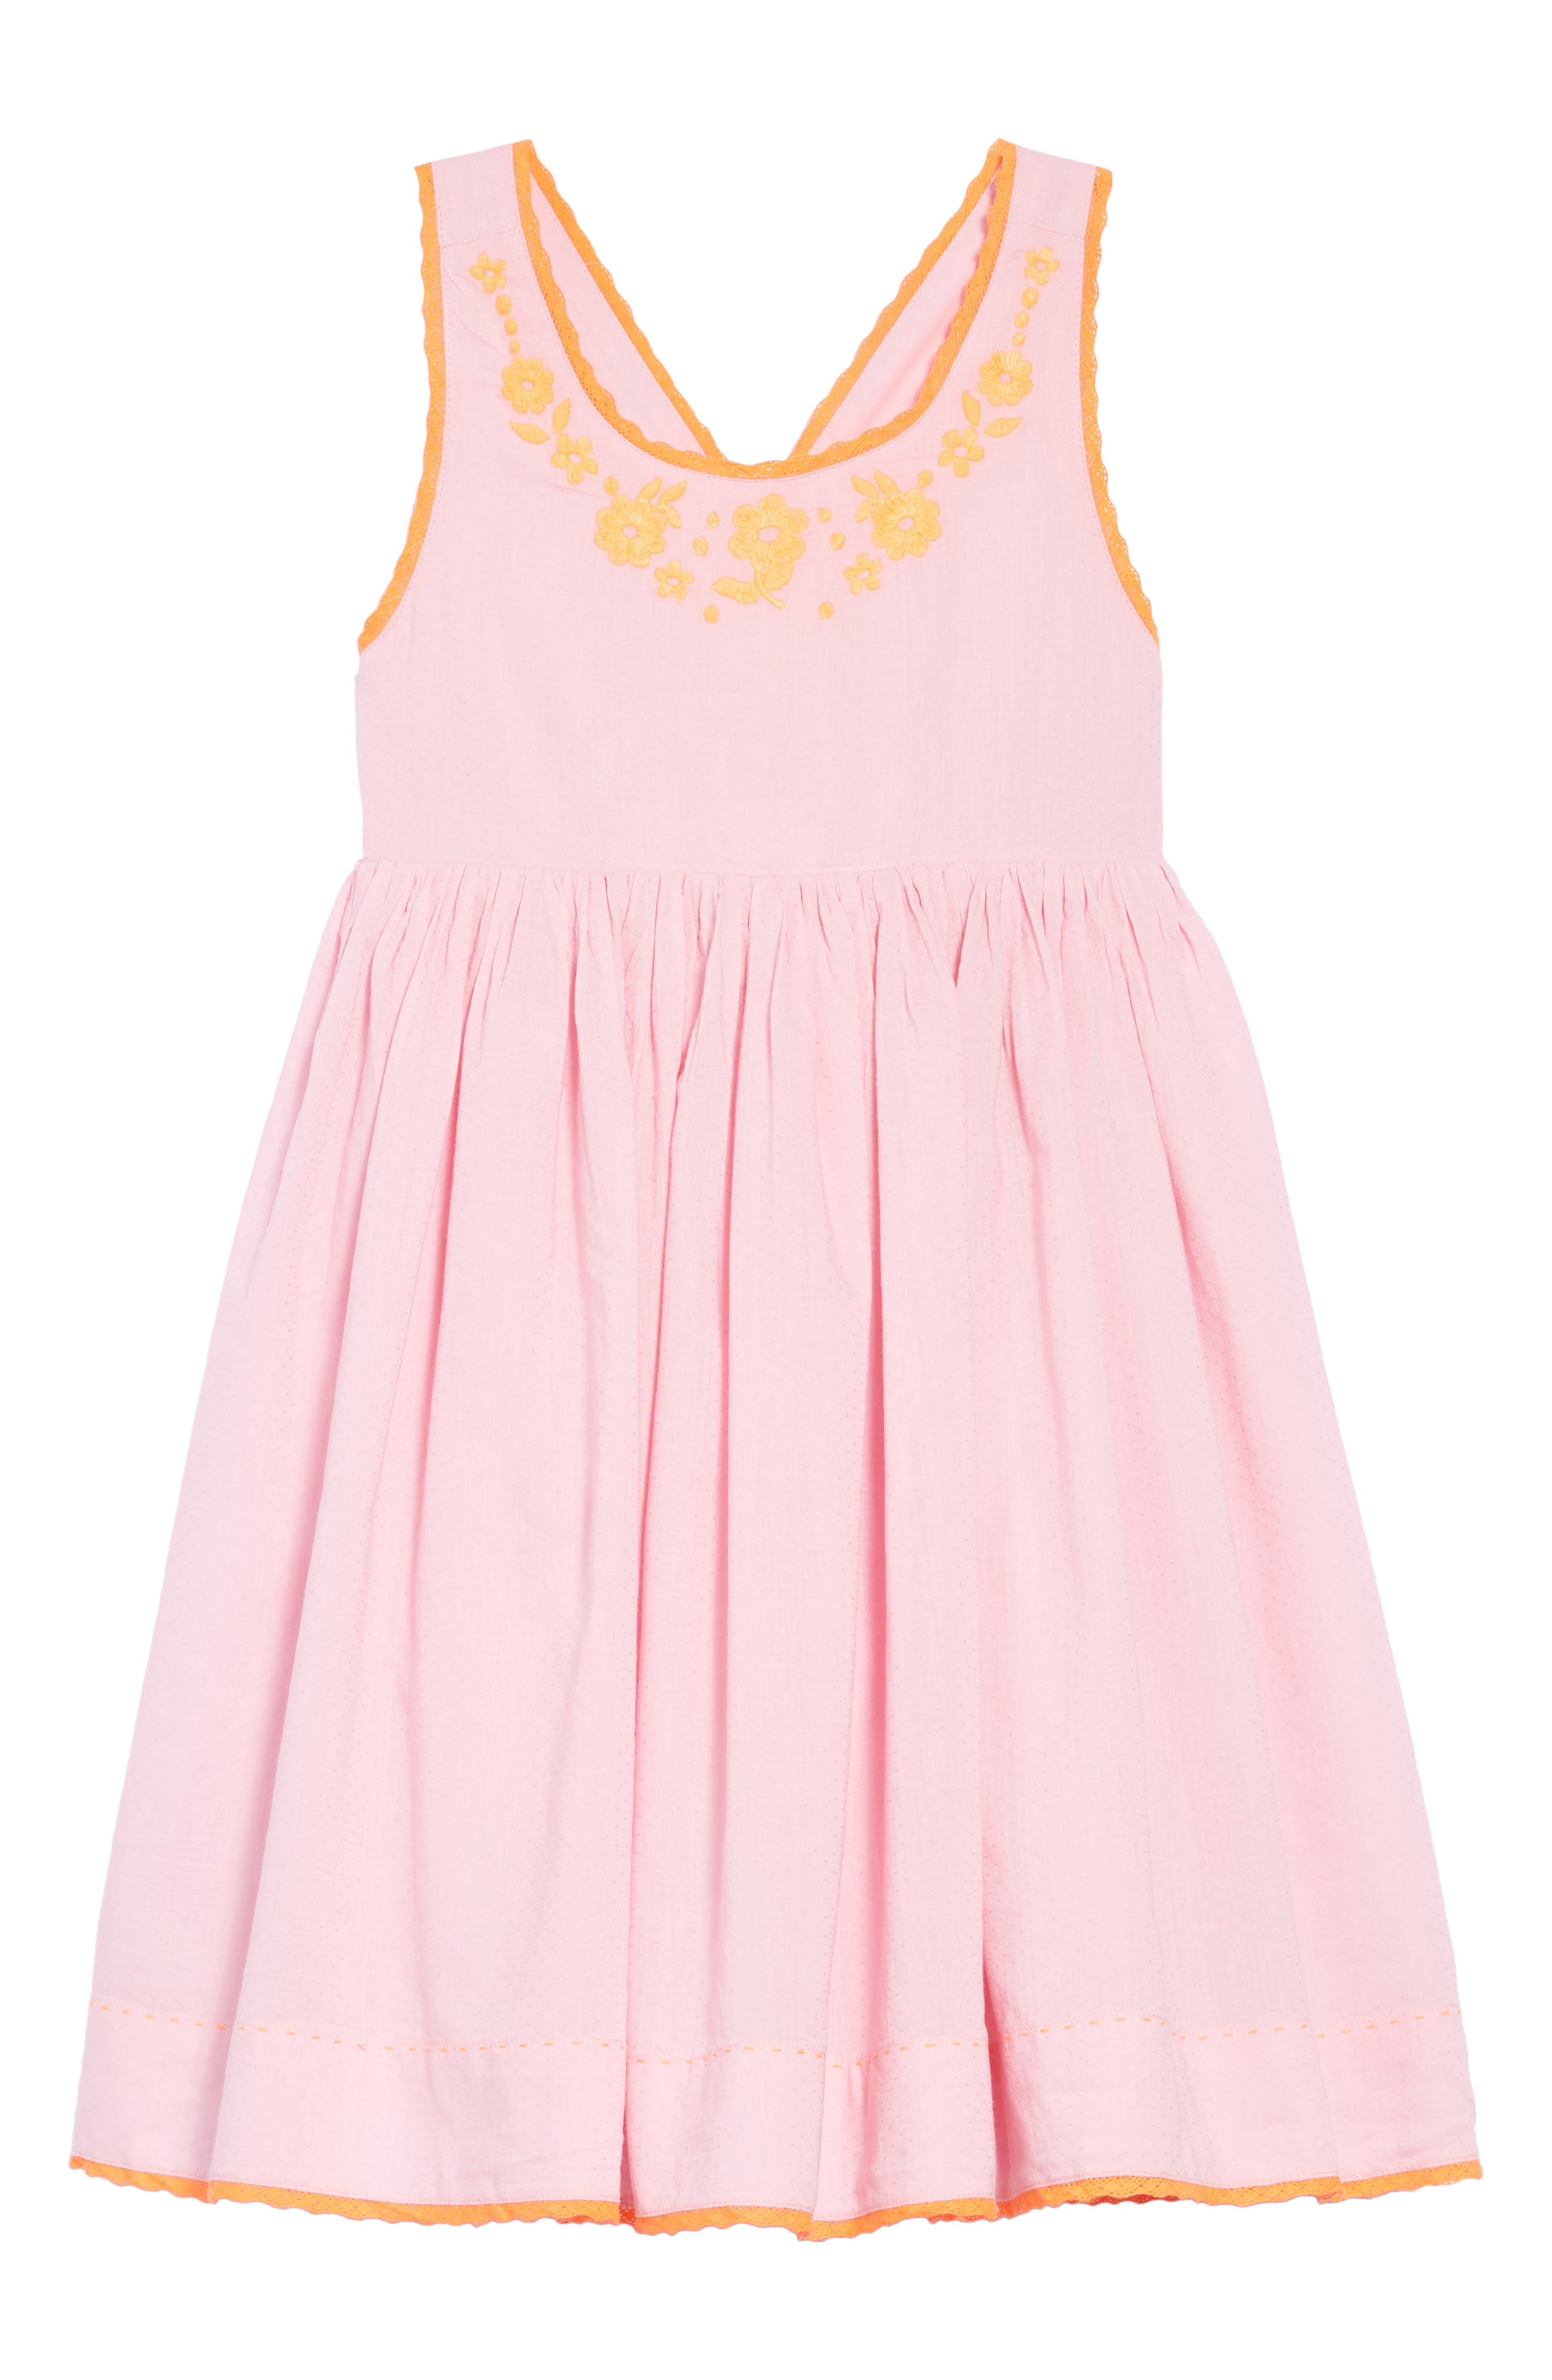 Woven Embroidered Dress,                         Main,                         color, Rosebud Pink